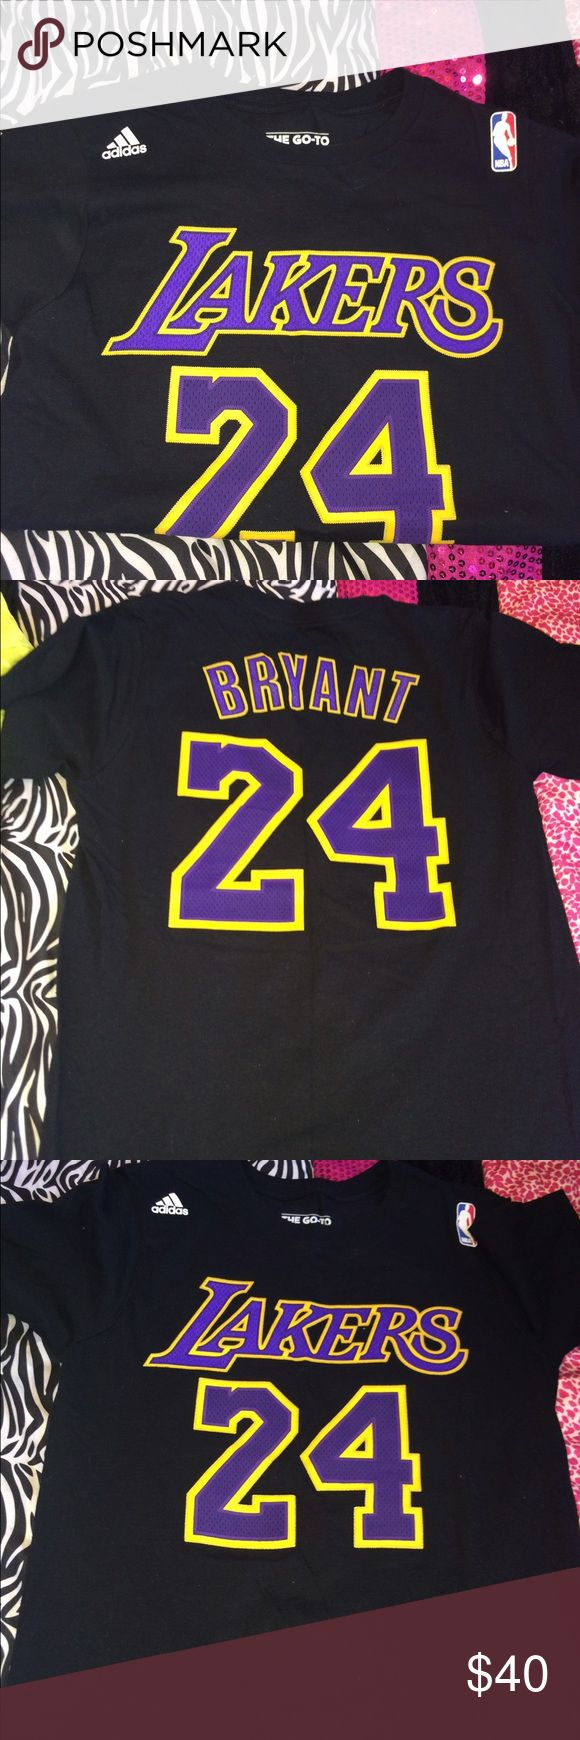 AUTH Lakers t shirt Lakers t shirt with 24 Bryant on the back! Size small! Only worn once for a game!  adidas Tops Tees - Short Sleeve